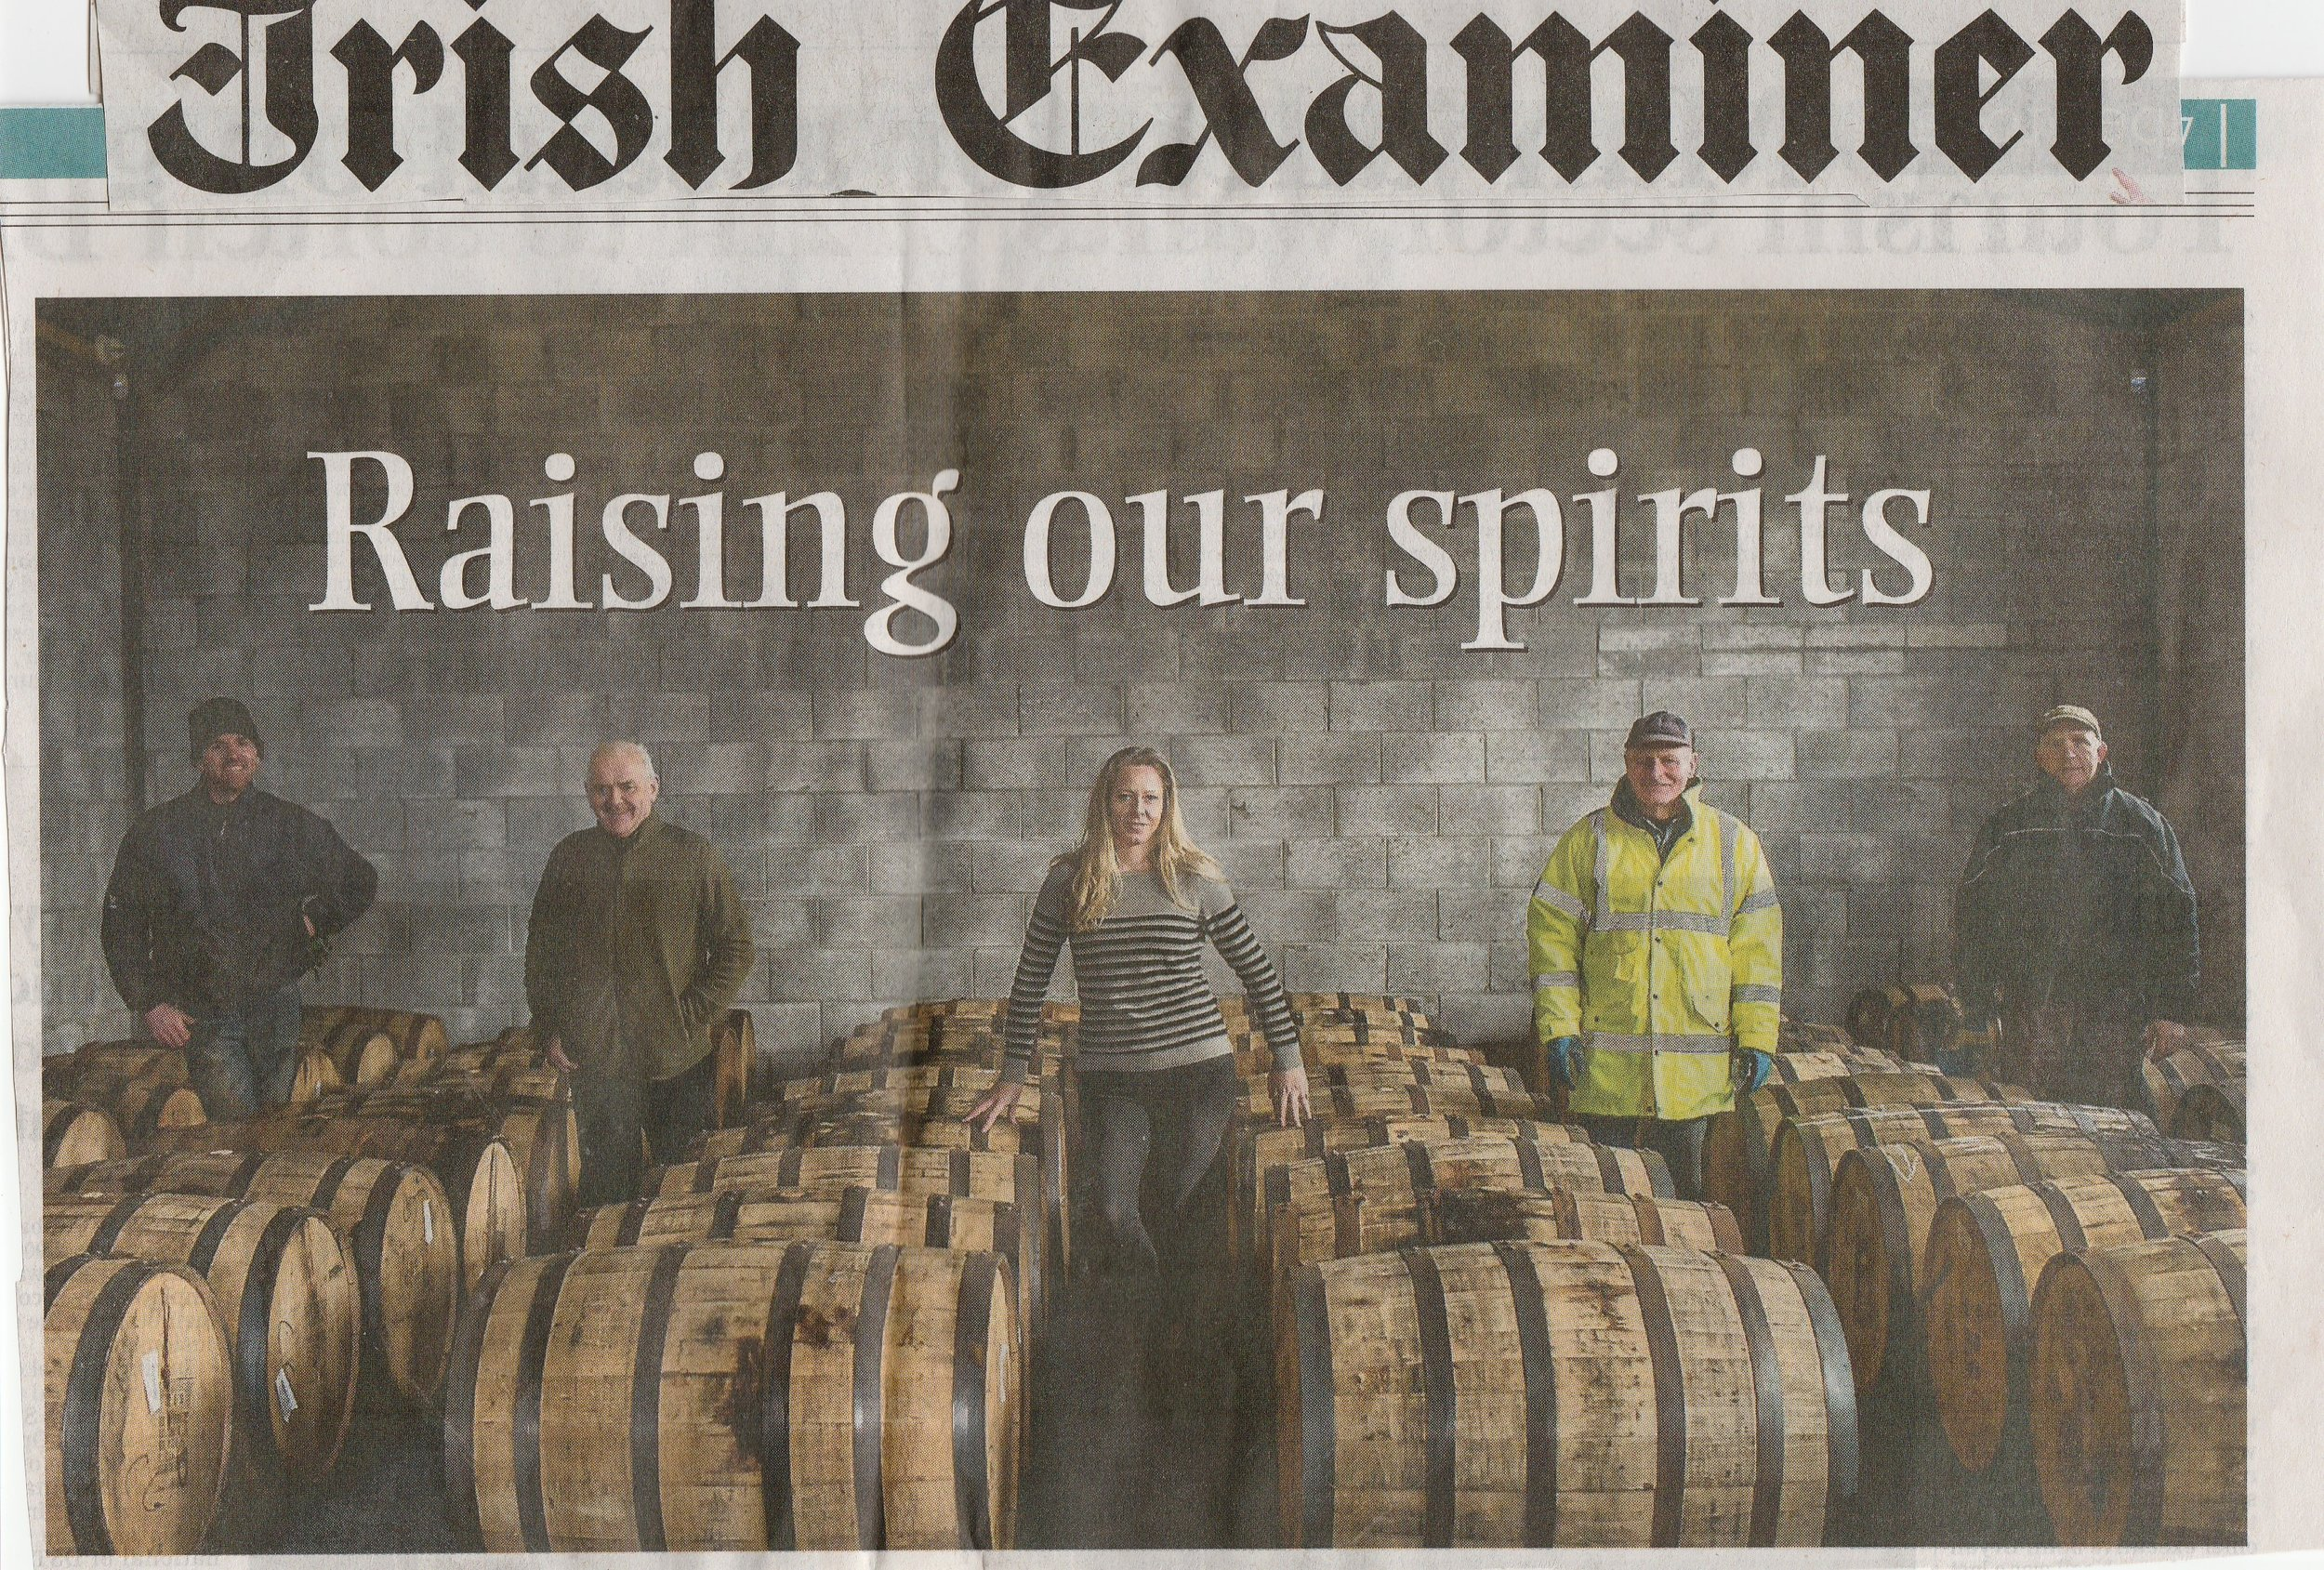 For the Full Irish Examiner Article  CLICK HERE